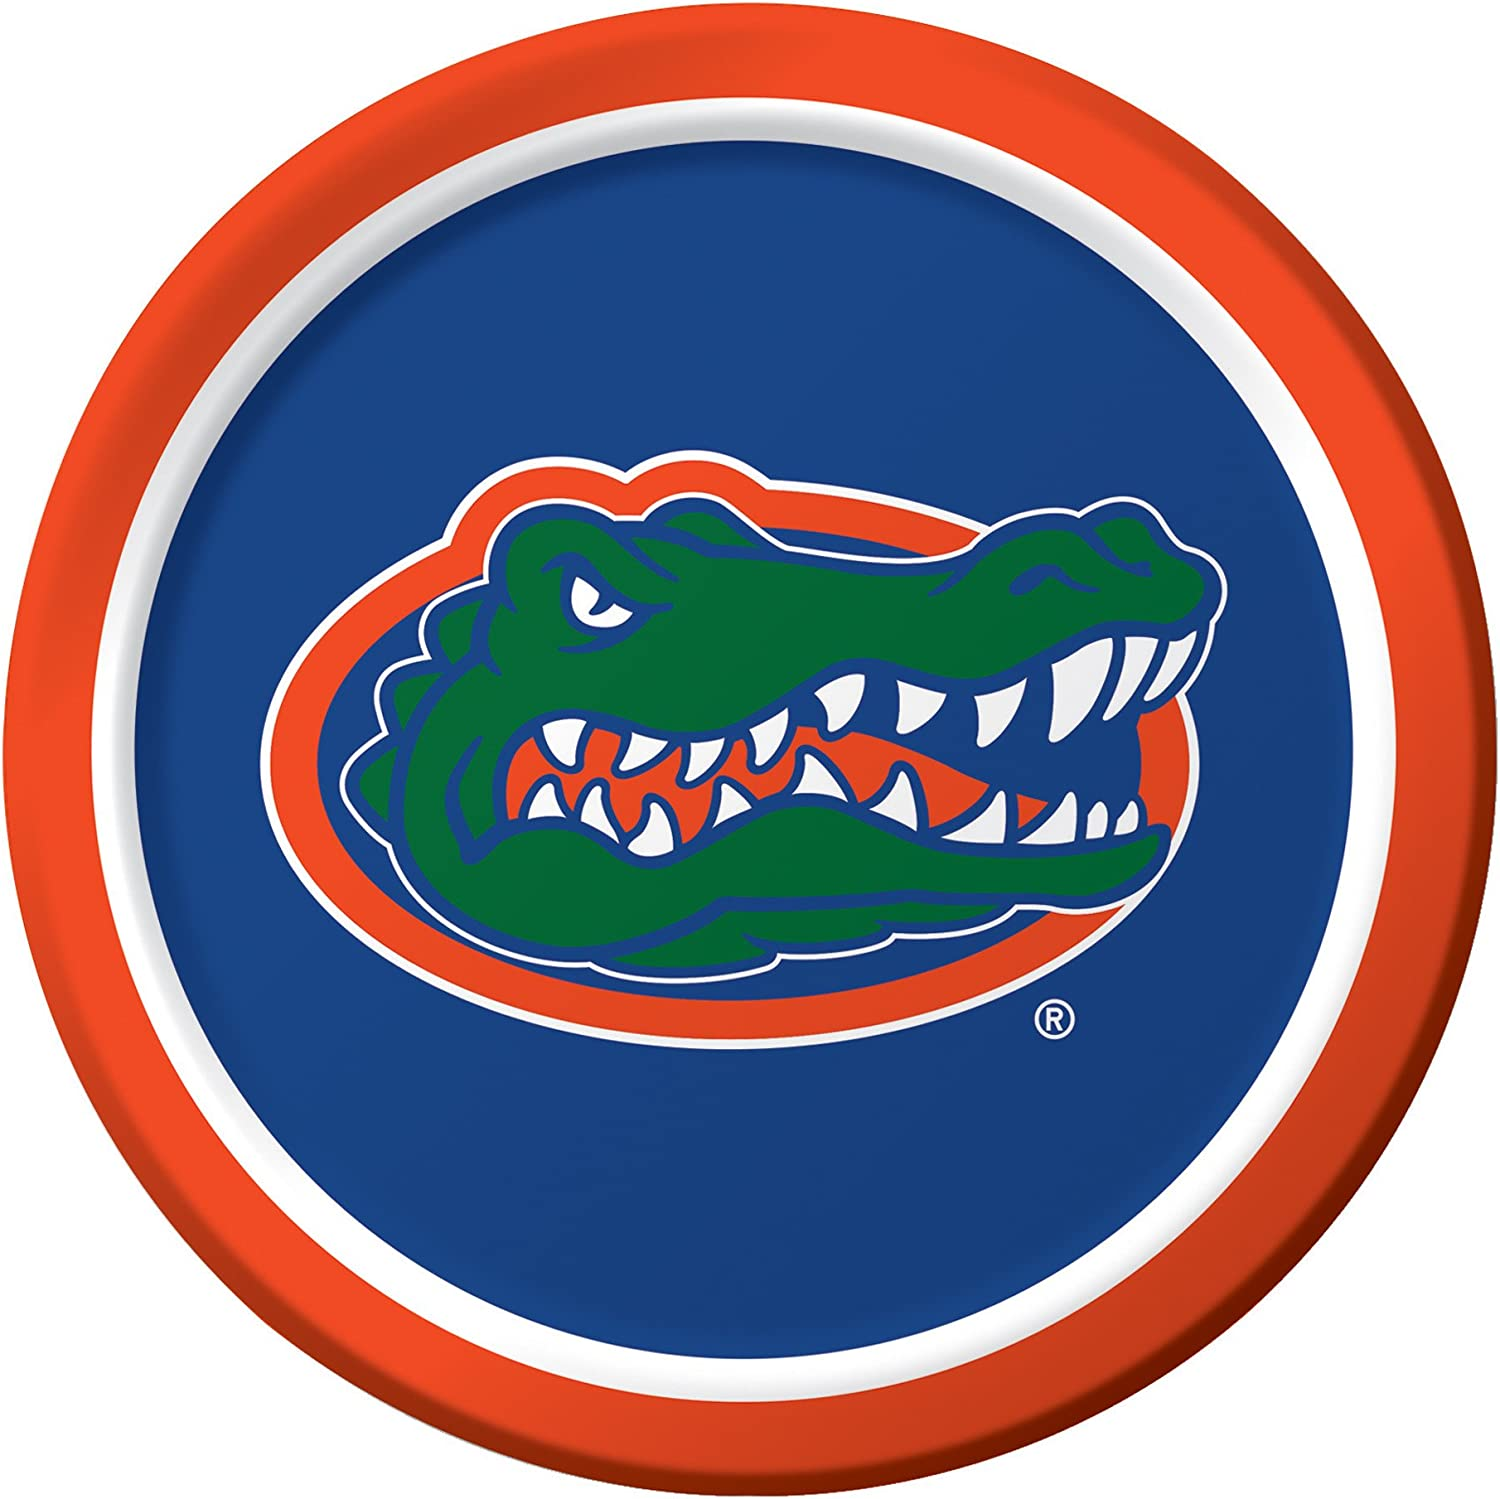 8-Count Sturdy Style Paper Dinner Plates, University of Florida